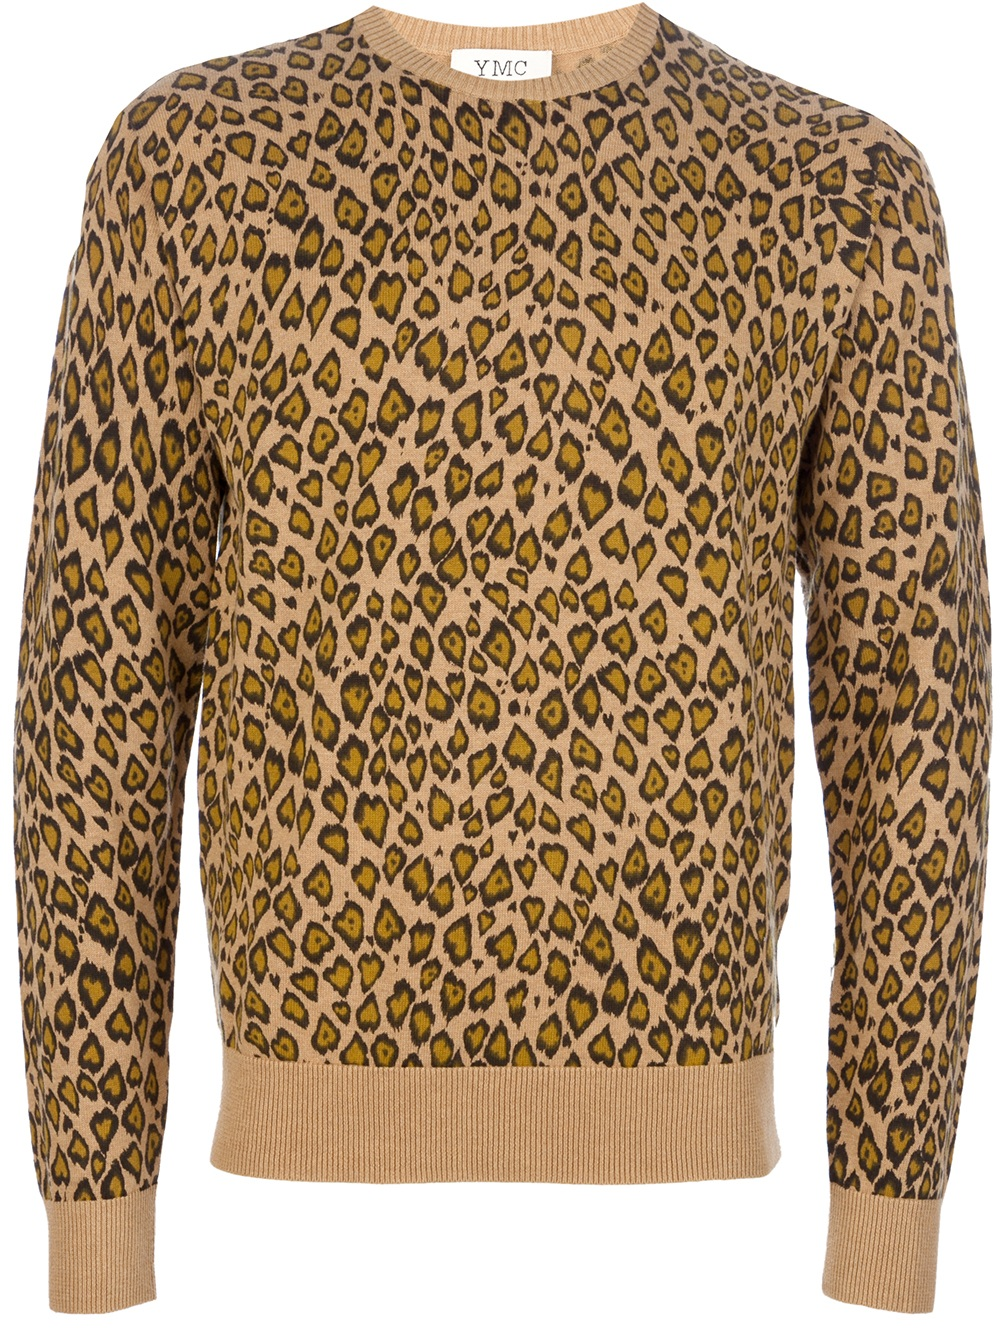 Leopard Print Sweaters ($ - $): 30 of items - Shop Leopard Print Sweaters from ALL your favorite stores & find HUGE SAVINGS up to 80% off Leopard Print Sweaters, including GREAT DEALS like Boston Proper Leopard Print Jeweled Sweater Brown/black Size Small ($).